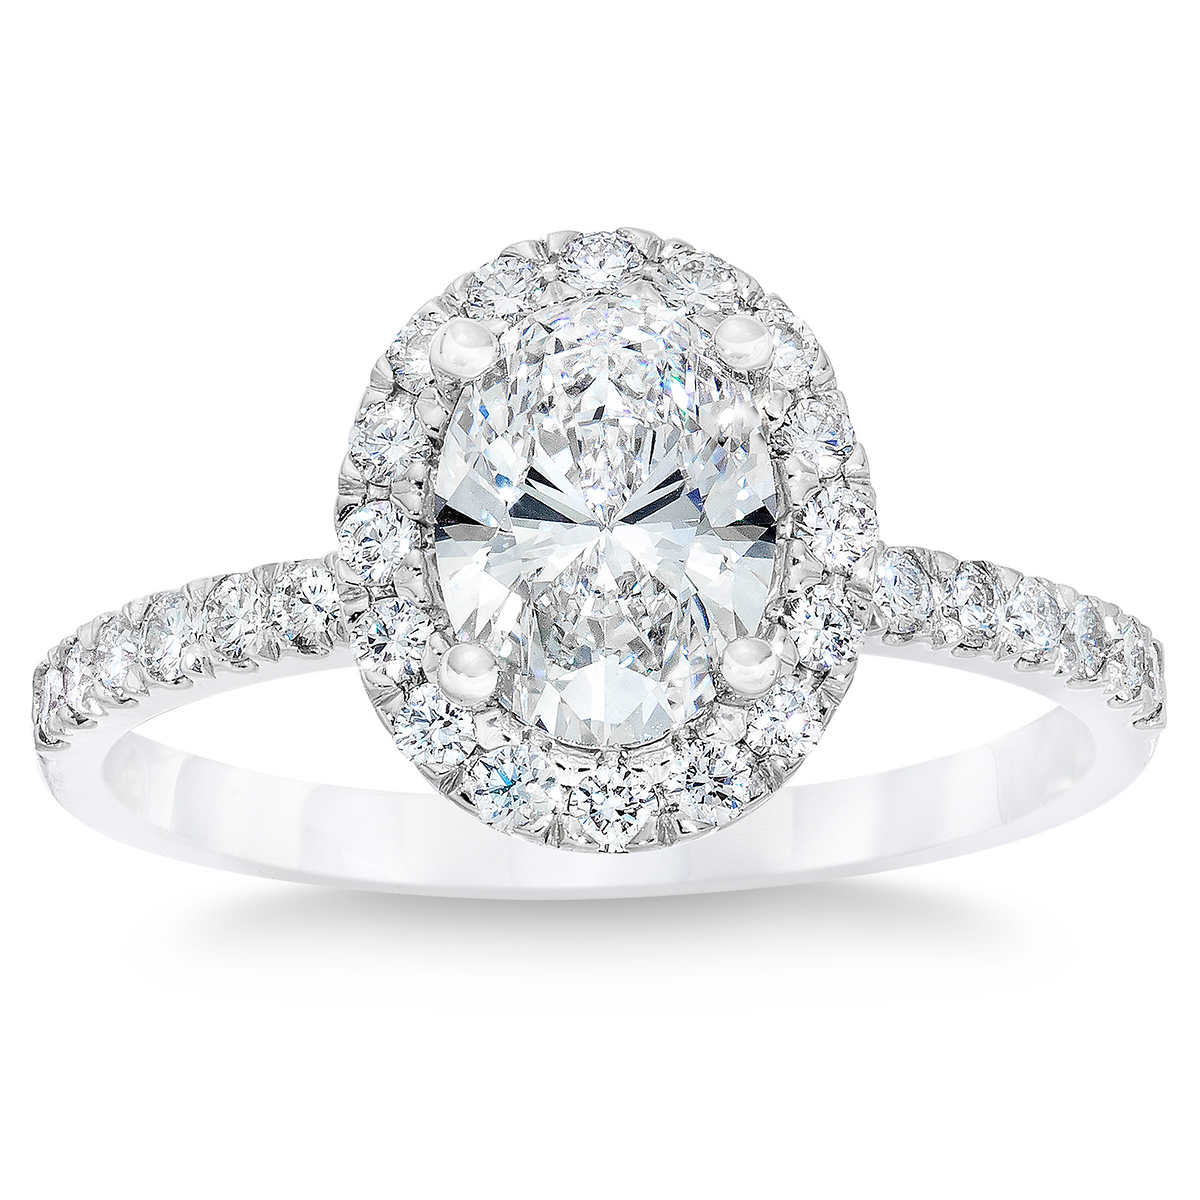 Oval Cut 202 Ctw Vs1 Clarity, D Color Diamond Platinum Halo Ring